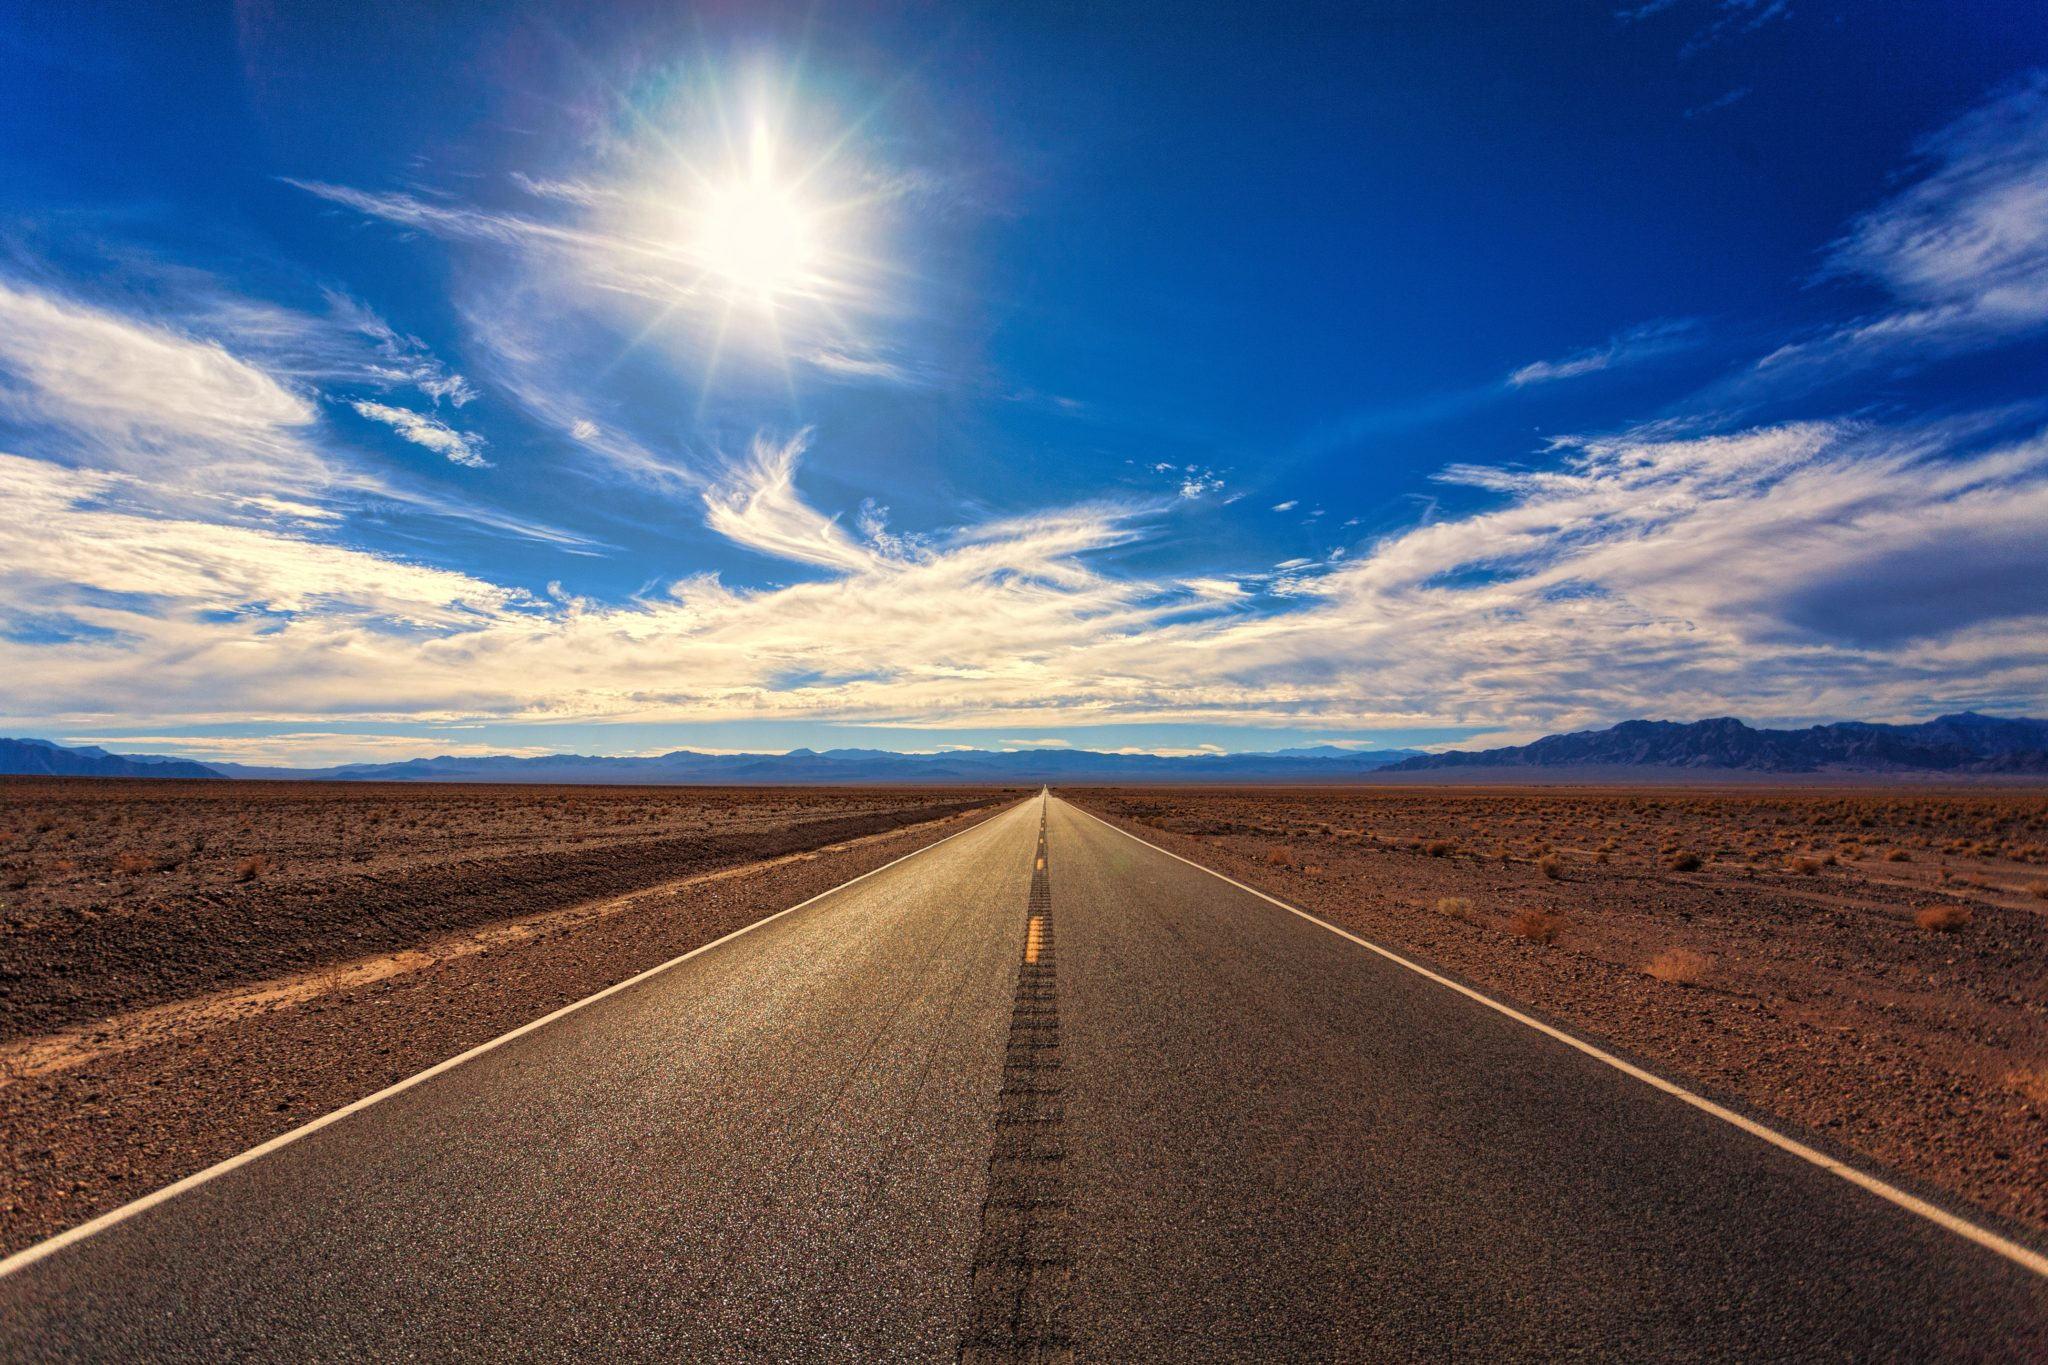 Stock Volatility and the Long Road of Investing